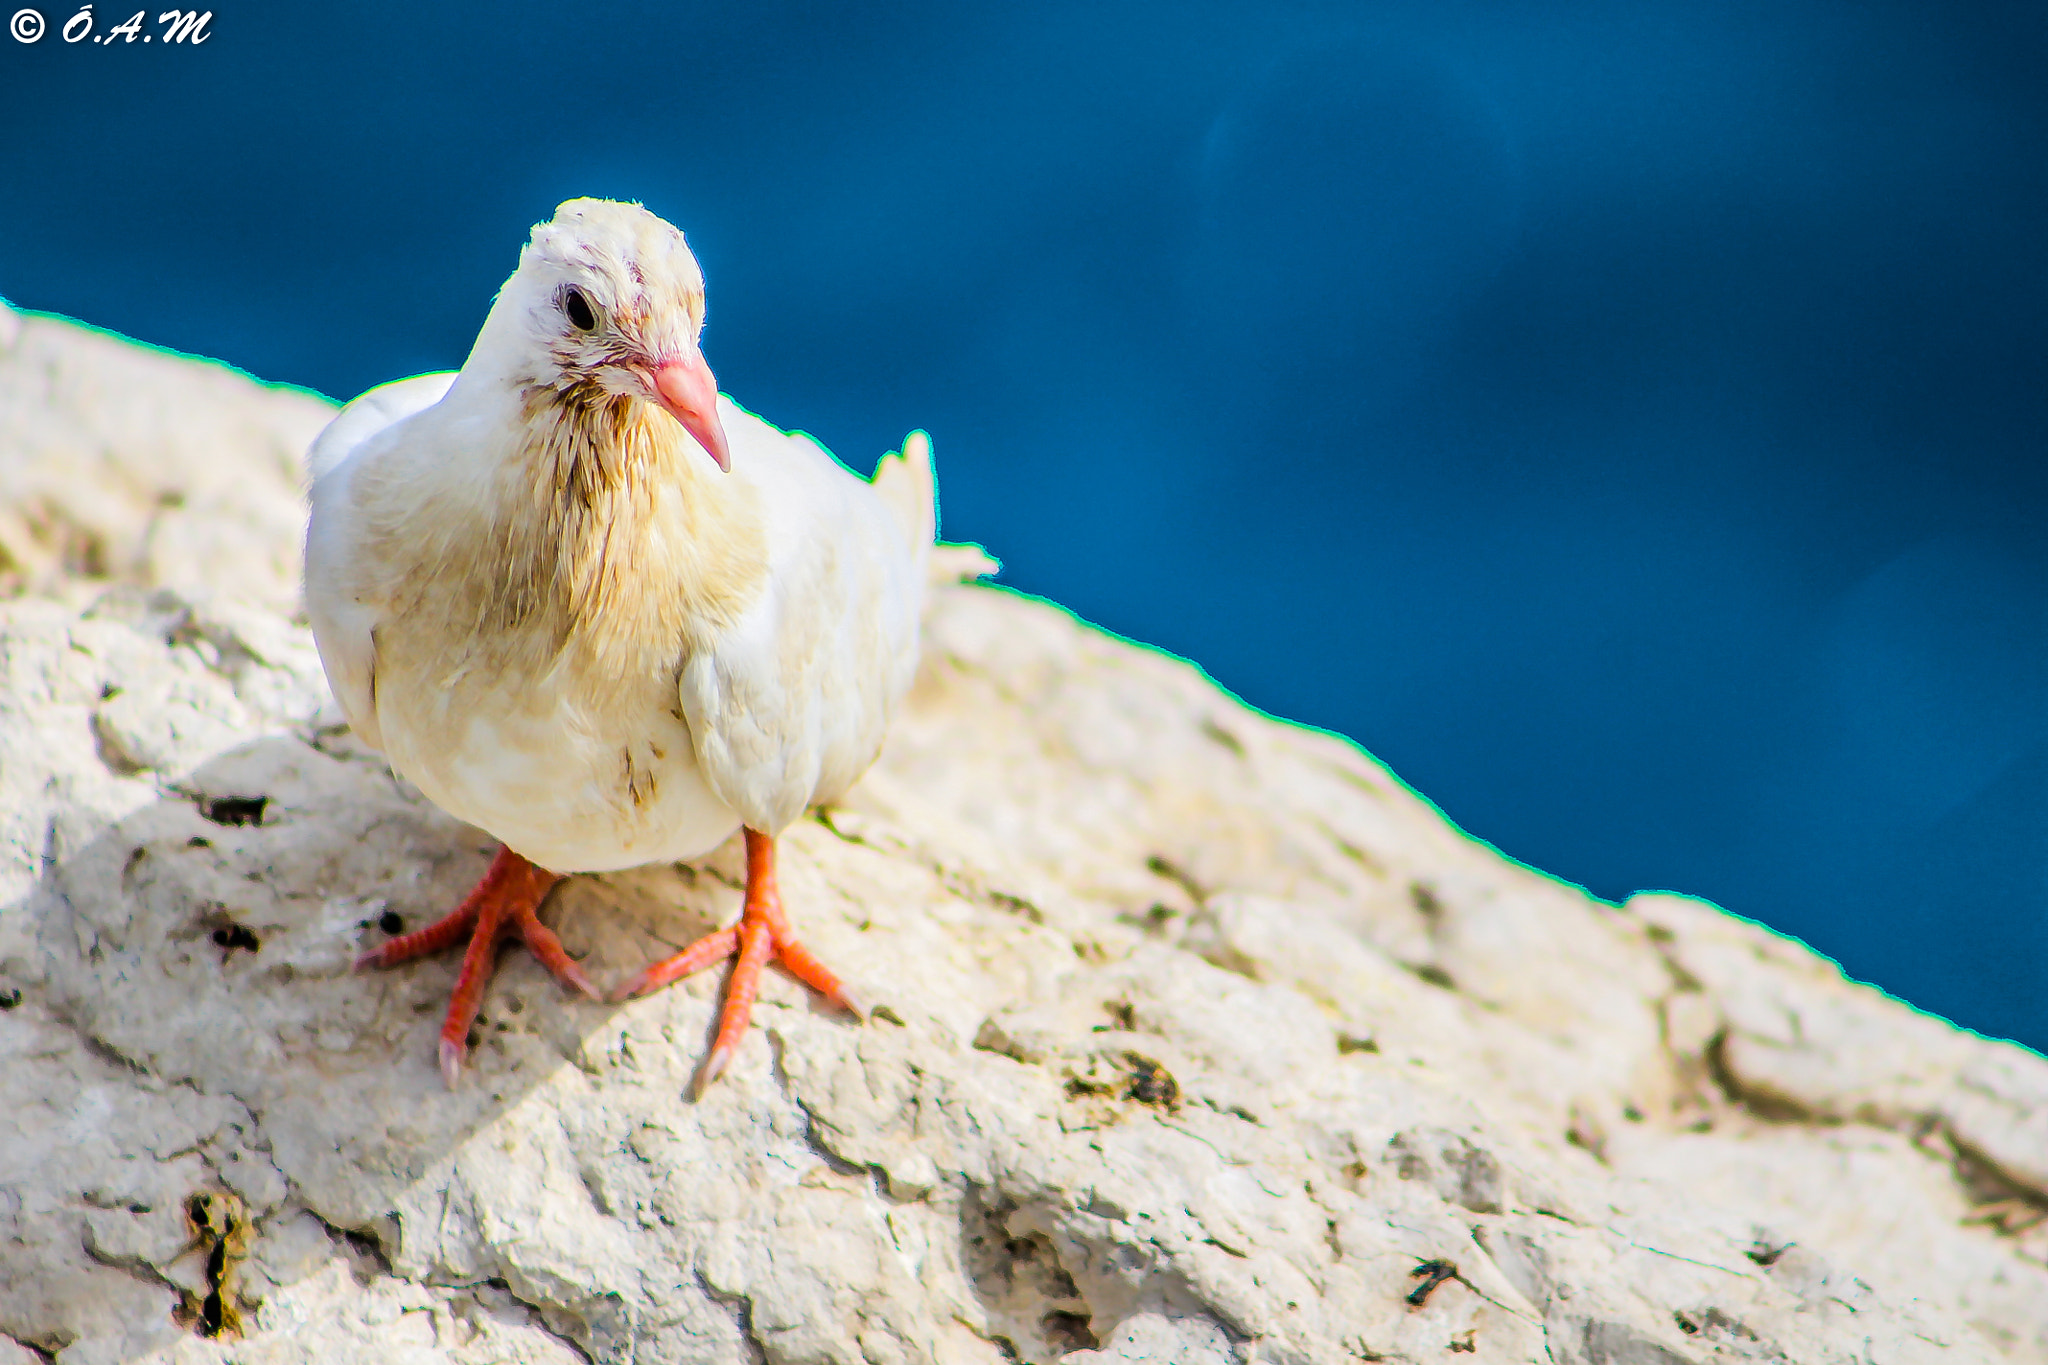 Photograph white Pigeon by Óli Magg on 500px